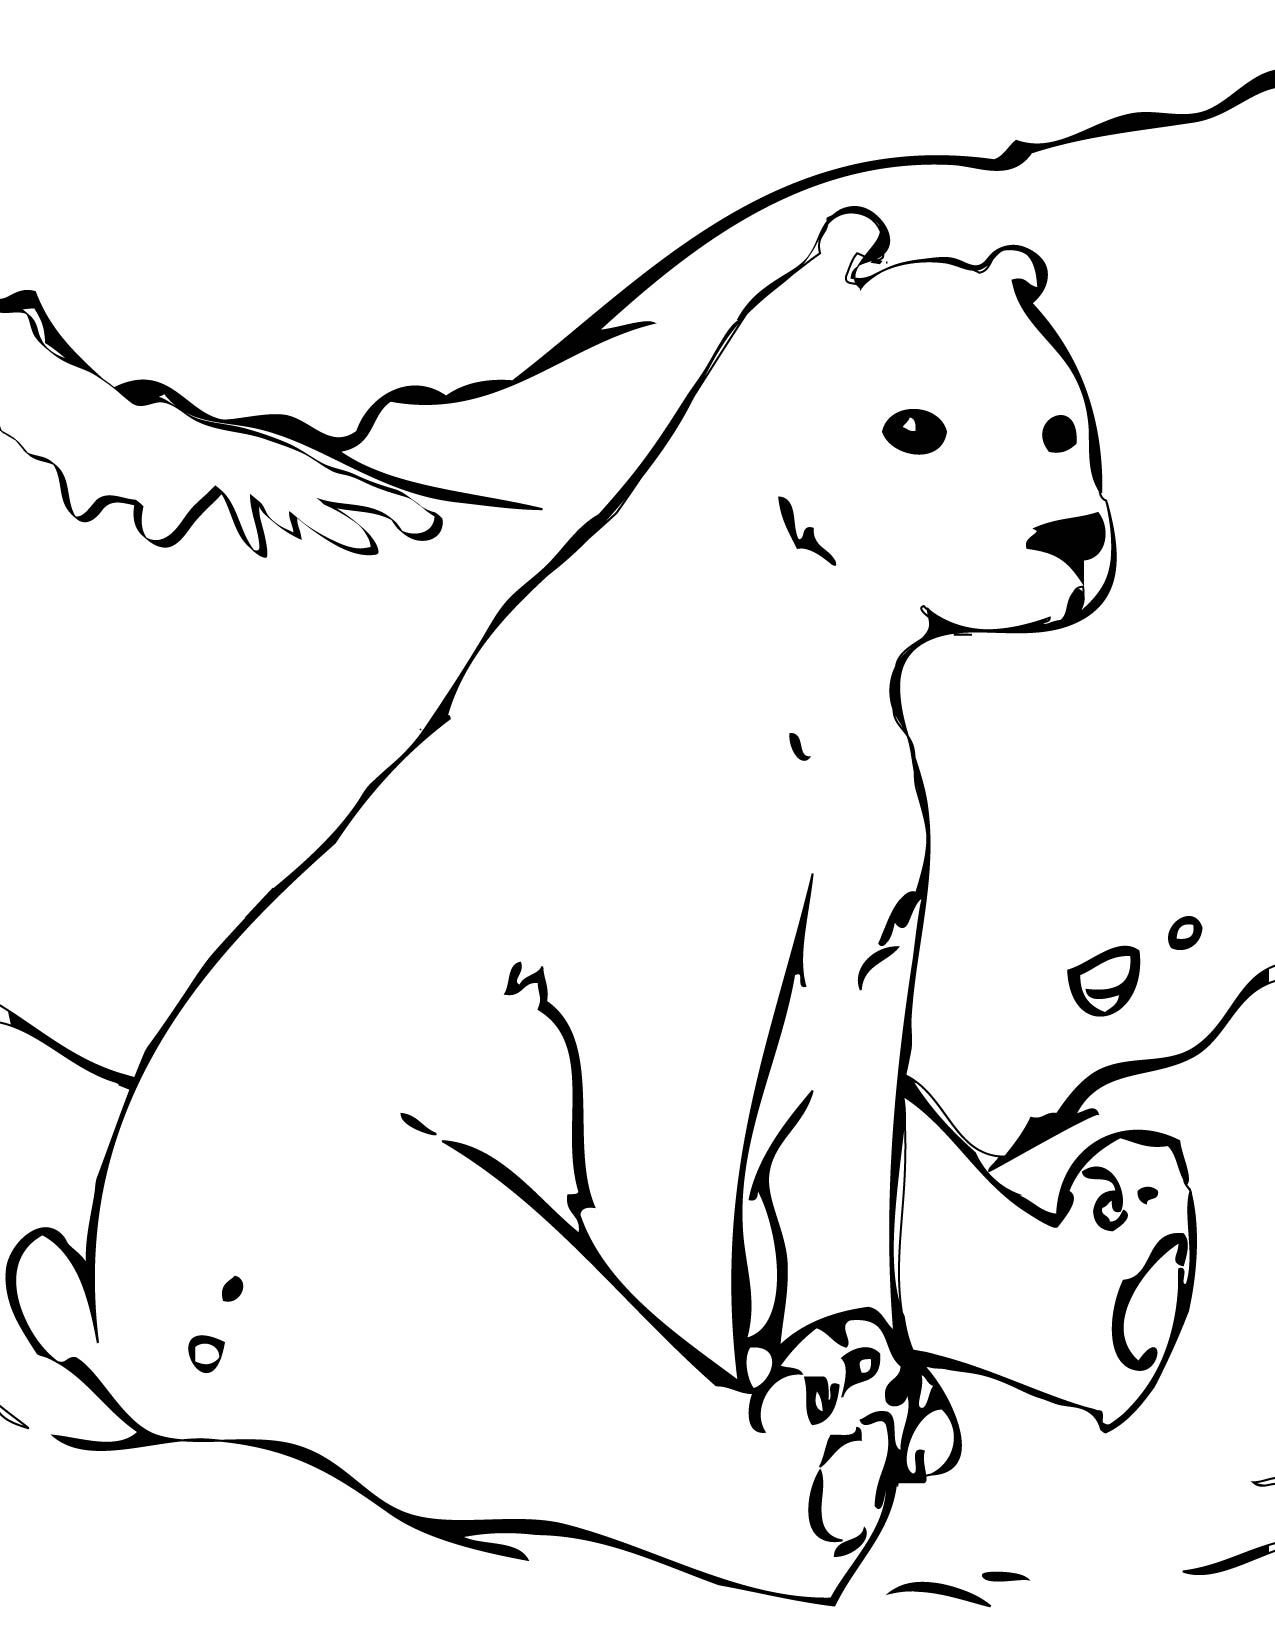 Polar Bear Coloring Page Bit Of A Dog S Head But The